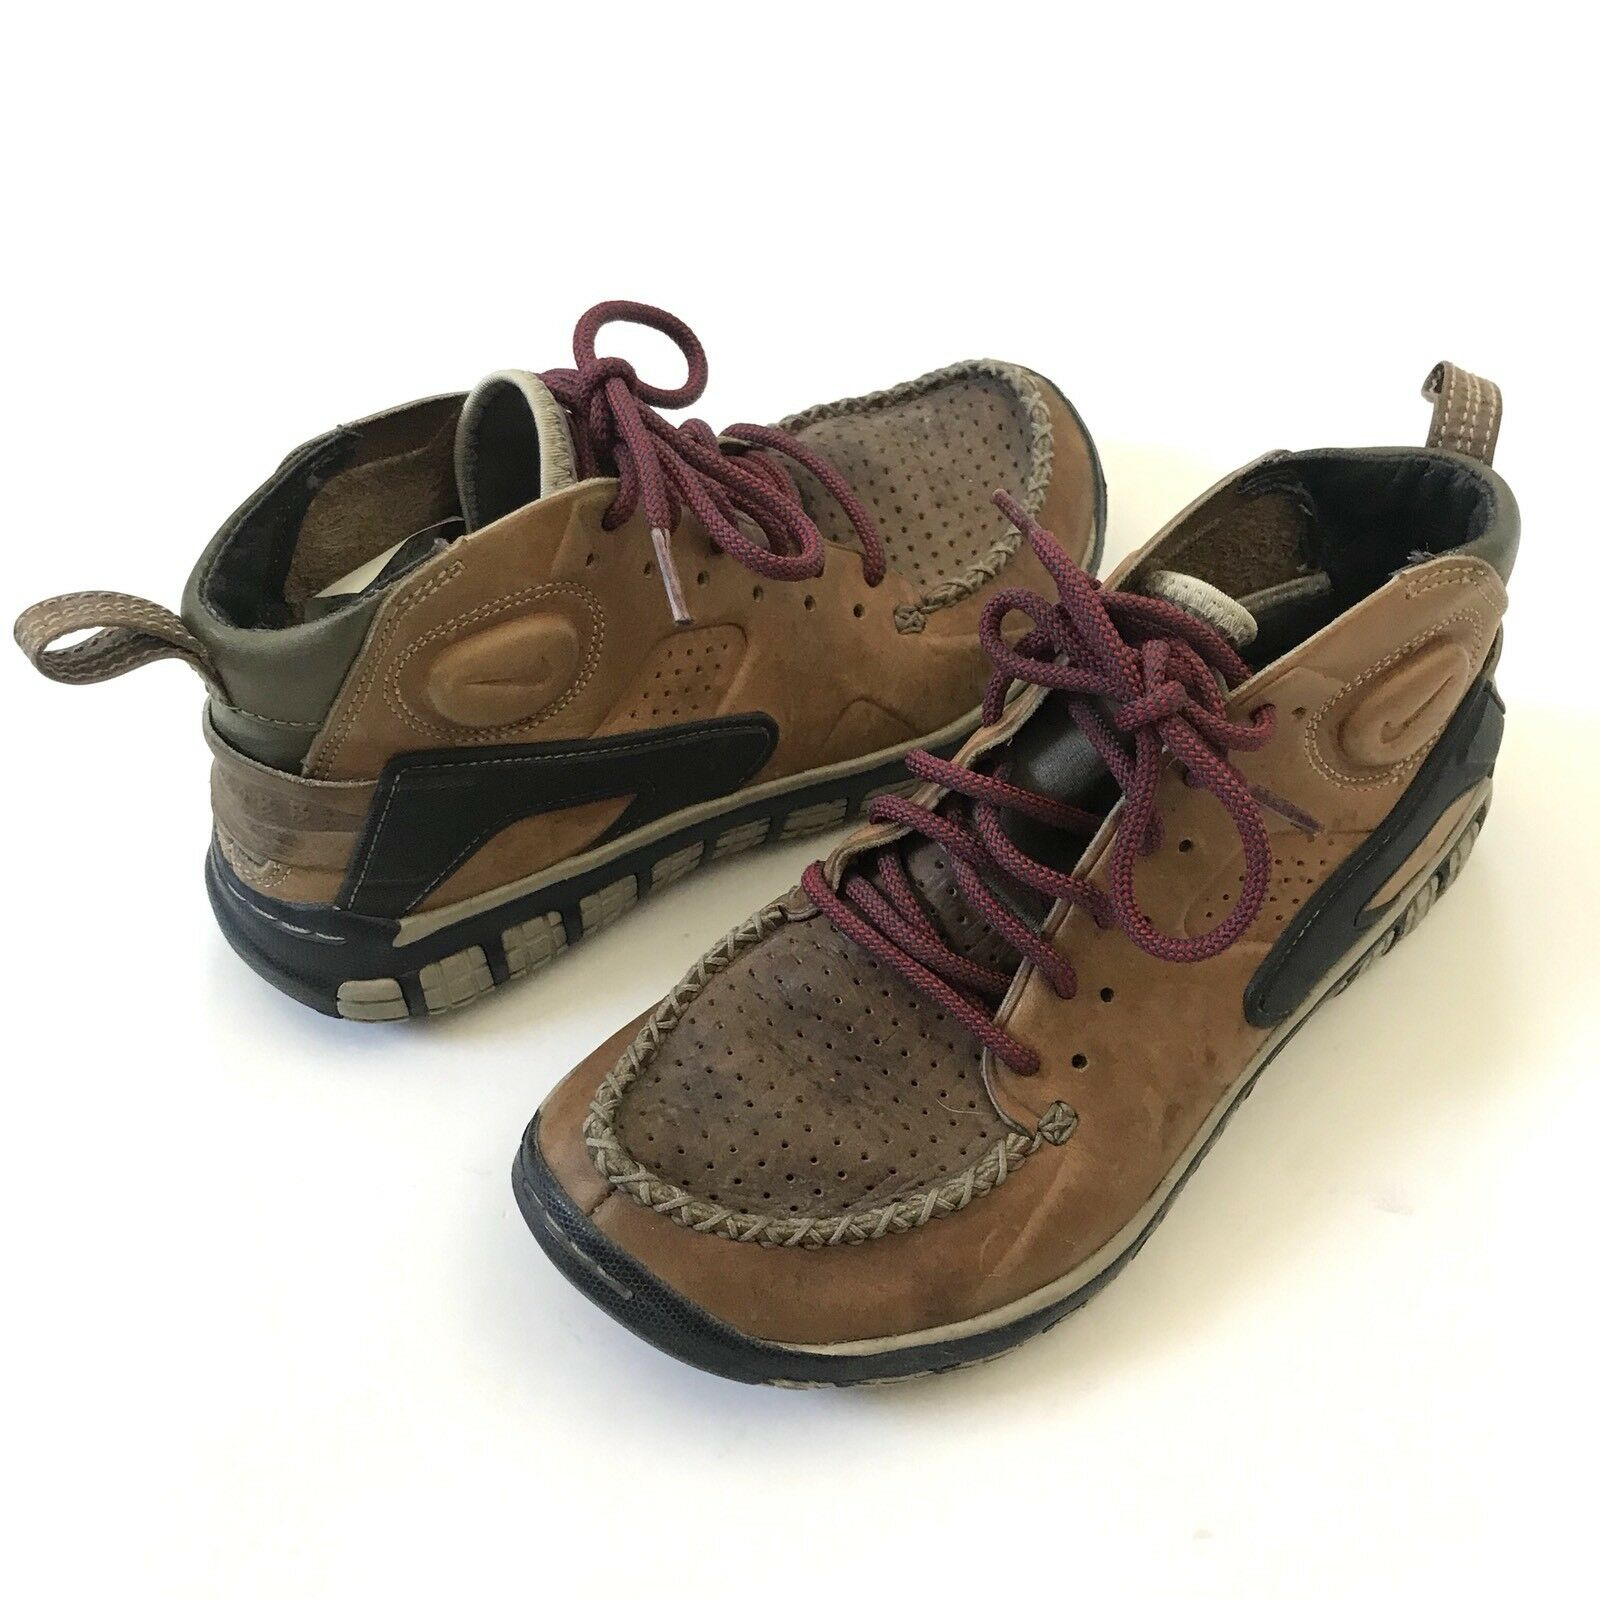 low priced 046a1 d5b76 ... shopping nike air mowabb moccasin mens us 6 leather moccasin mowabb toe  ankle sneaker 079b21 8588f